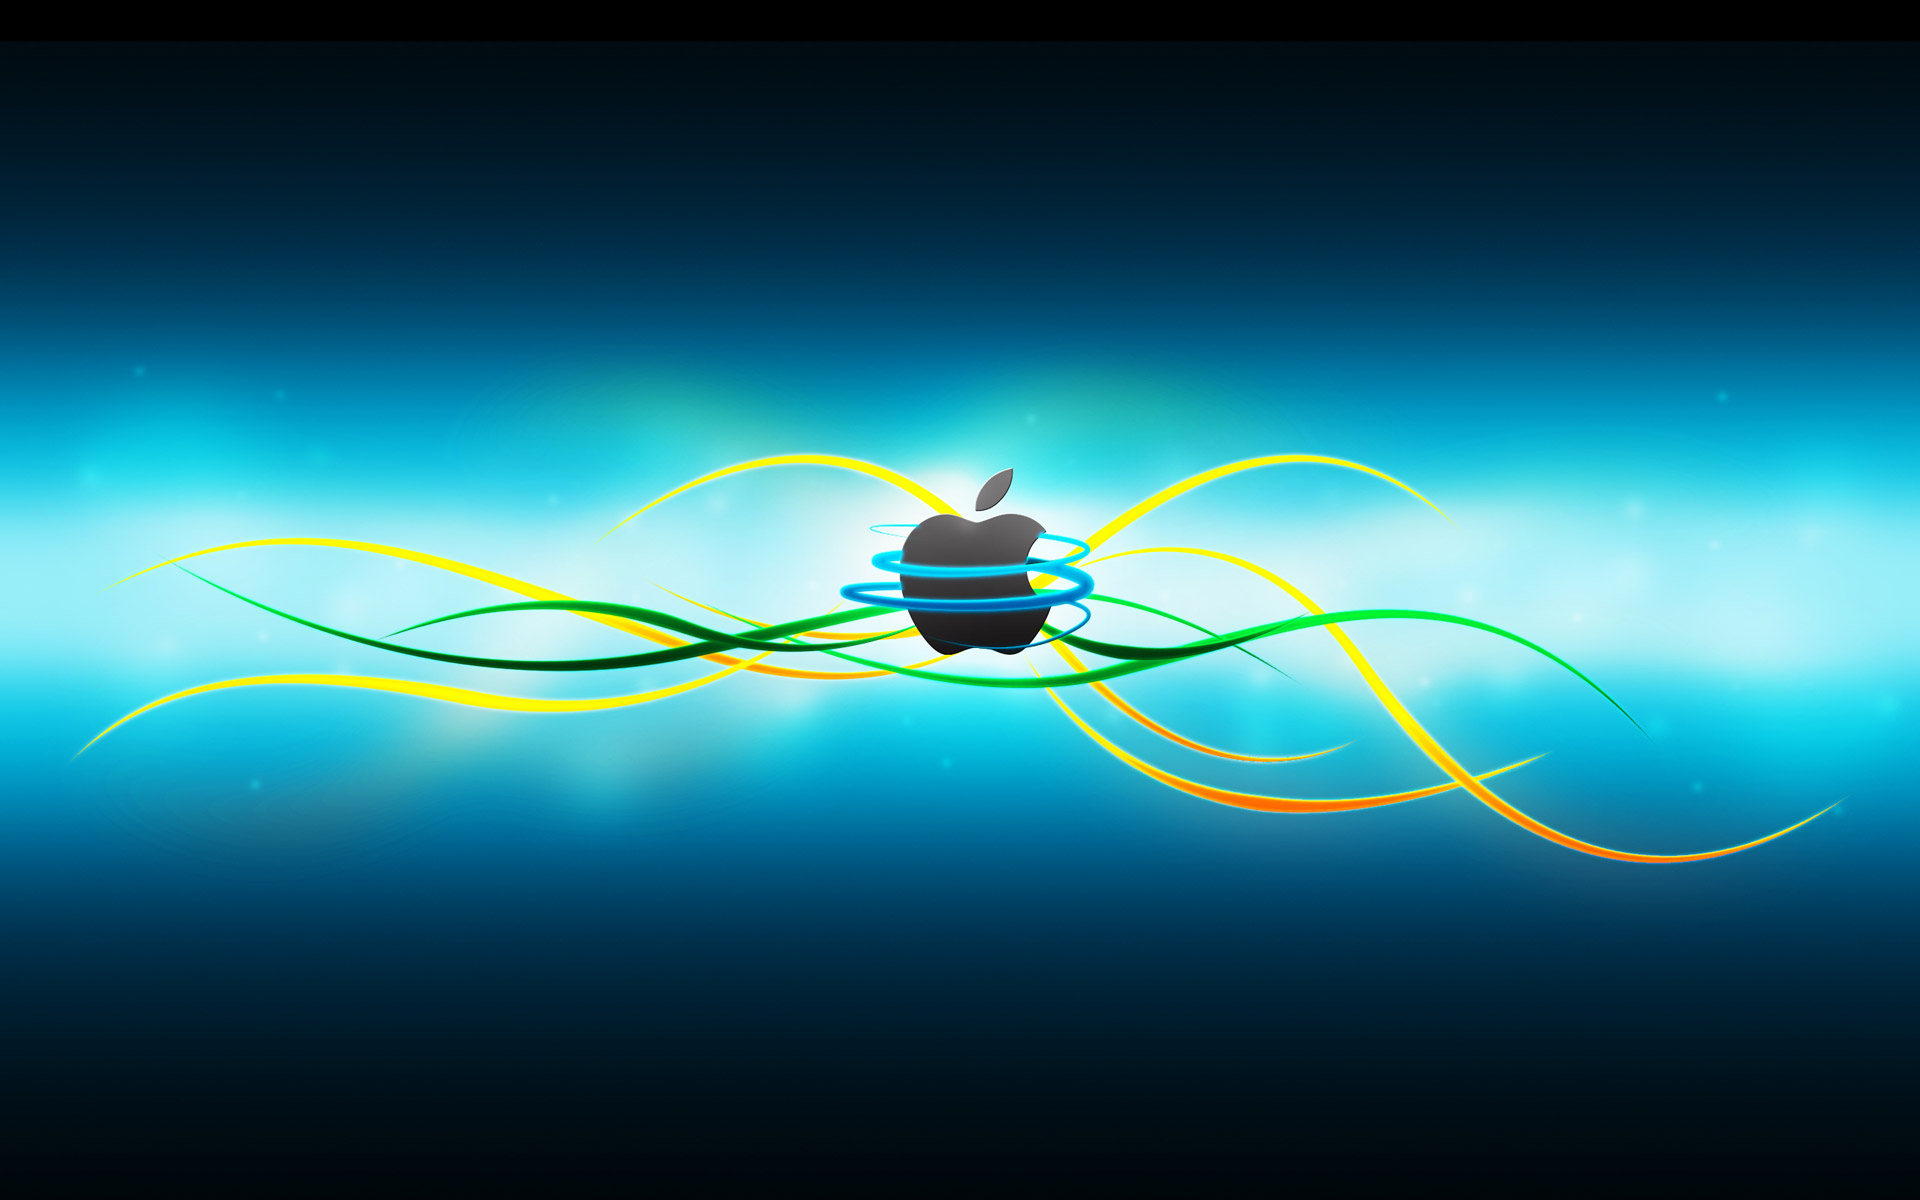 50 inspiring apple mac ipad wallpapers for download Free 3d